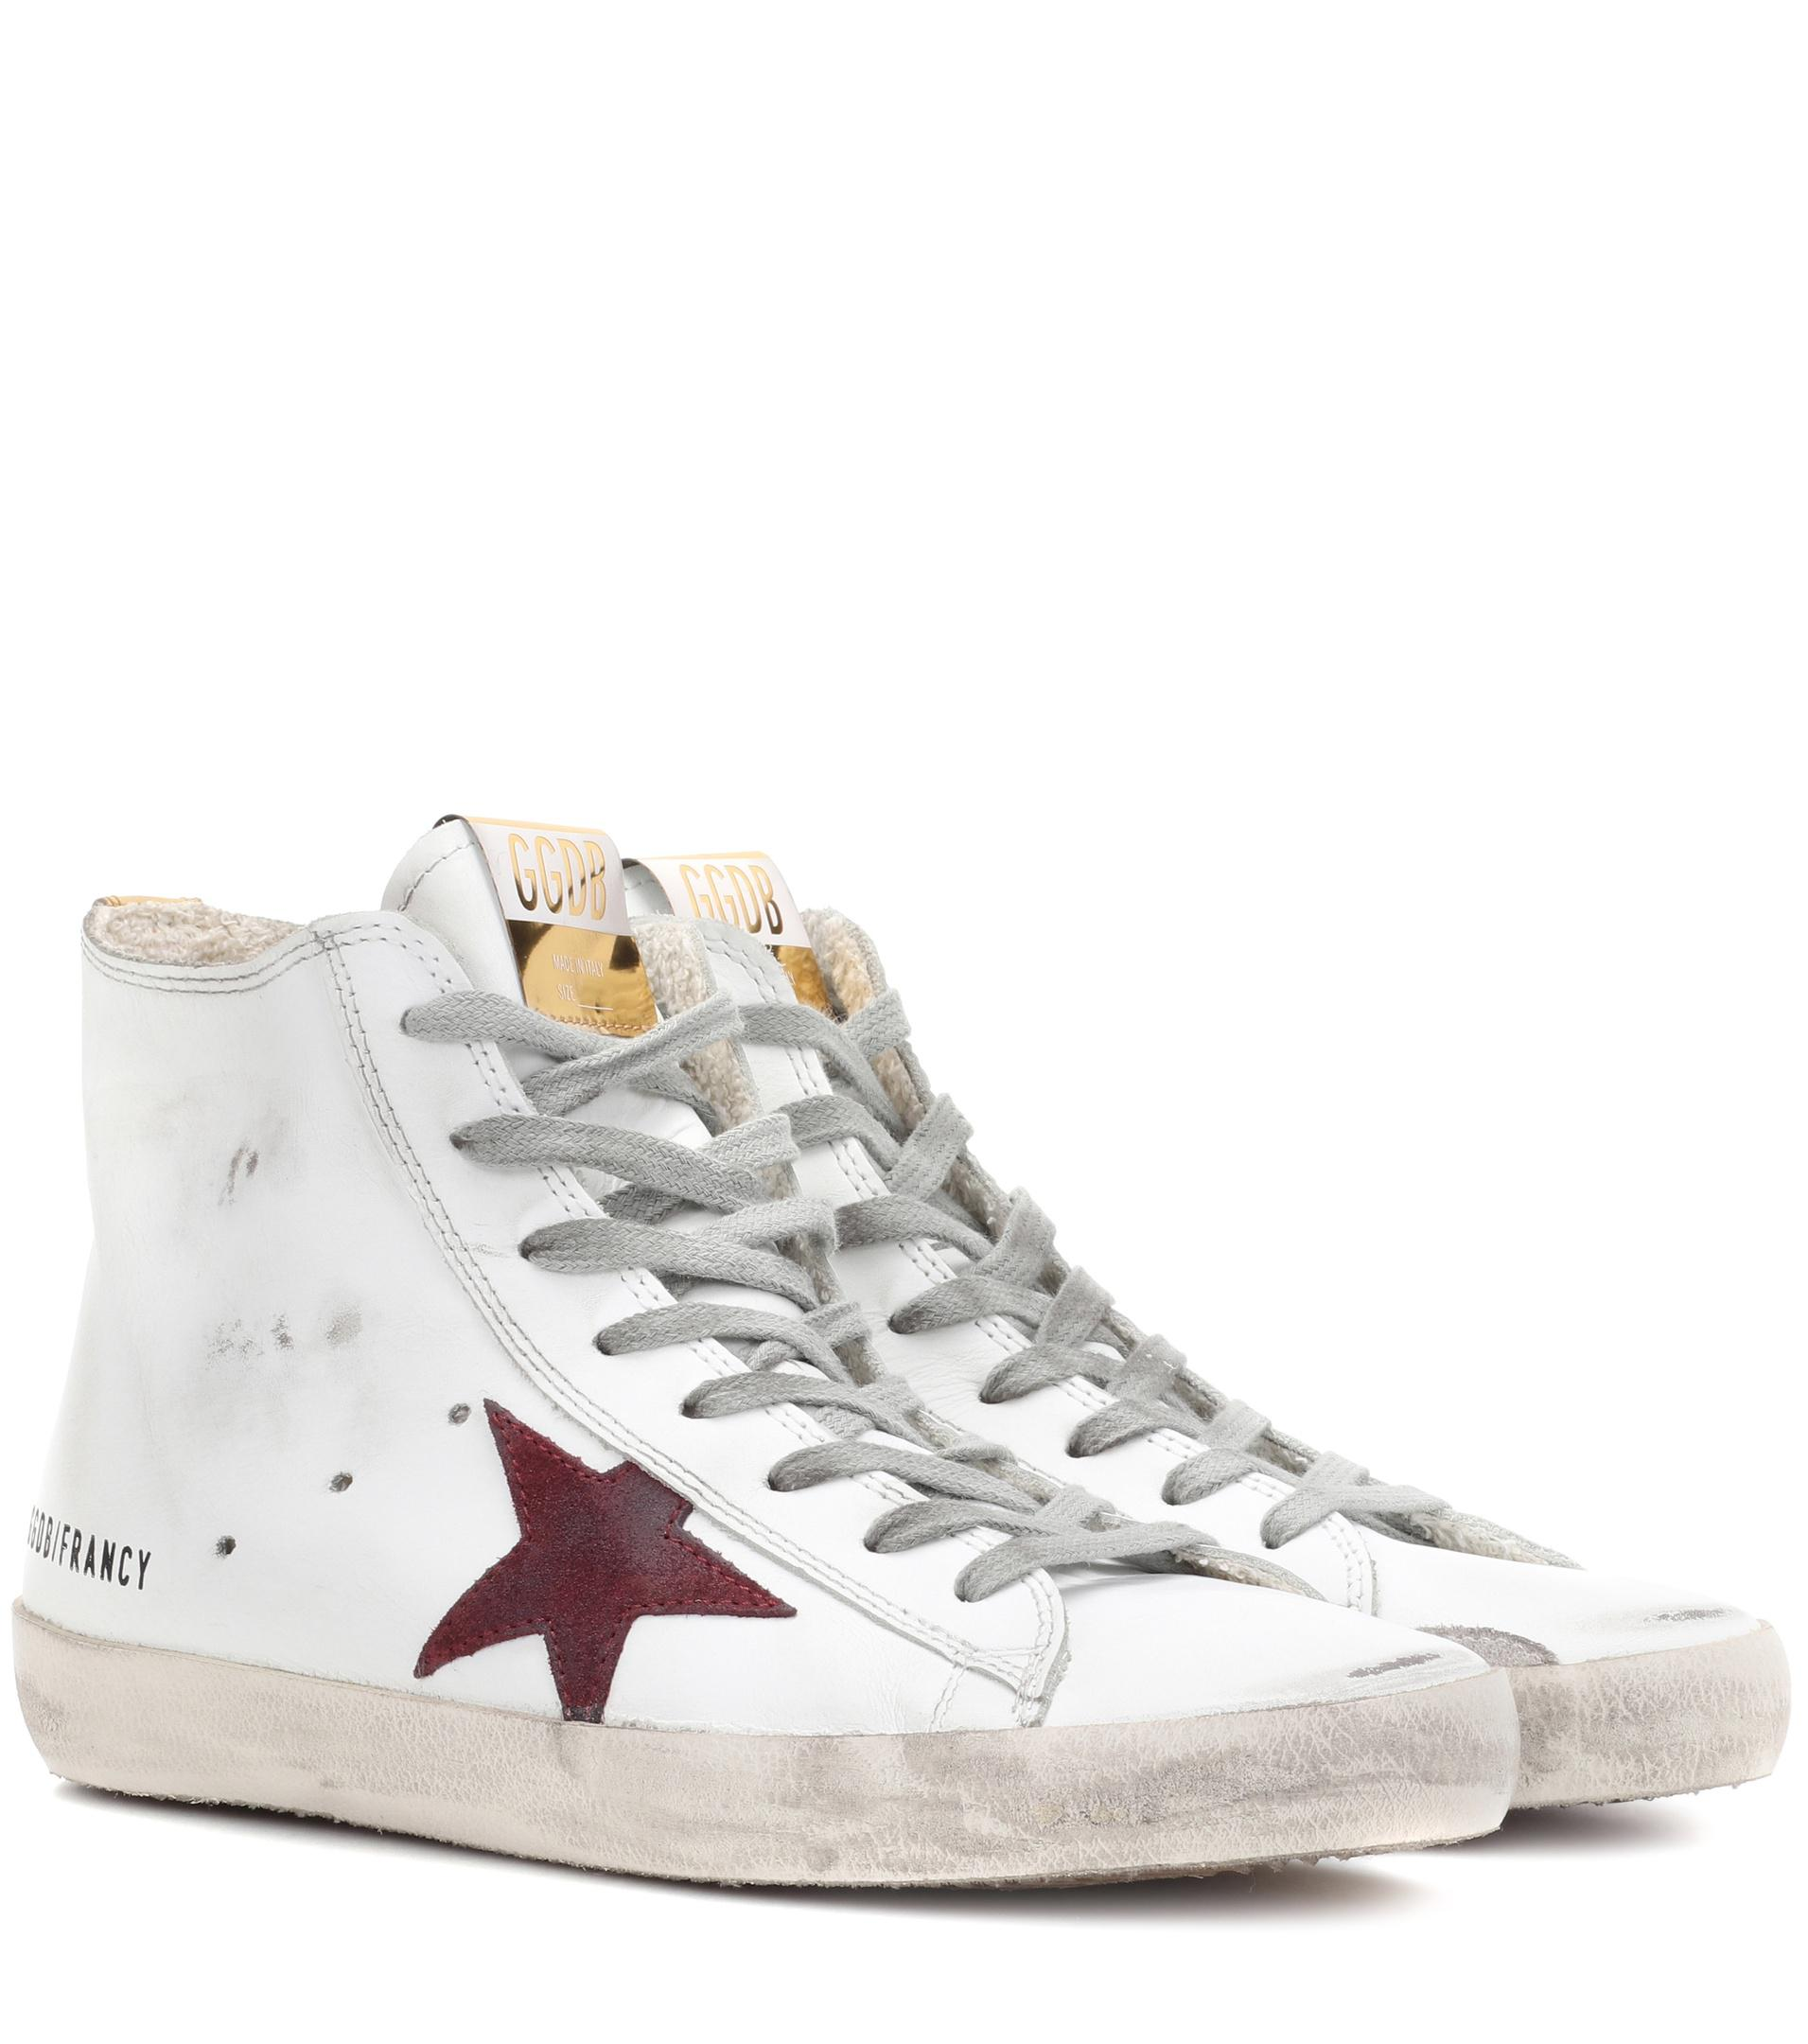 195d26e0bf88 golden goose deluxe brand women s white francy high-top leather trainers